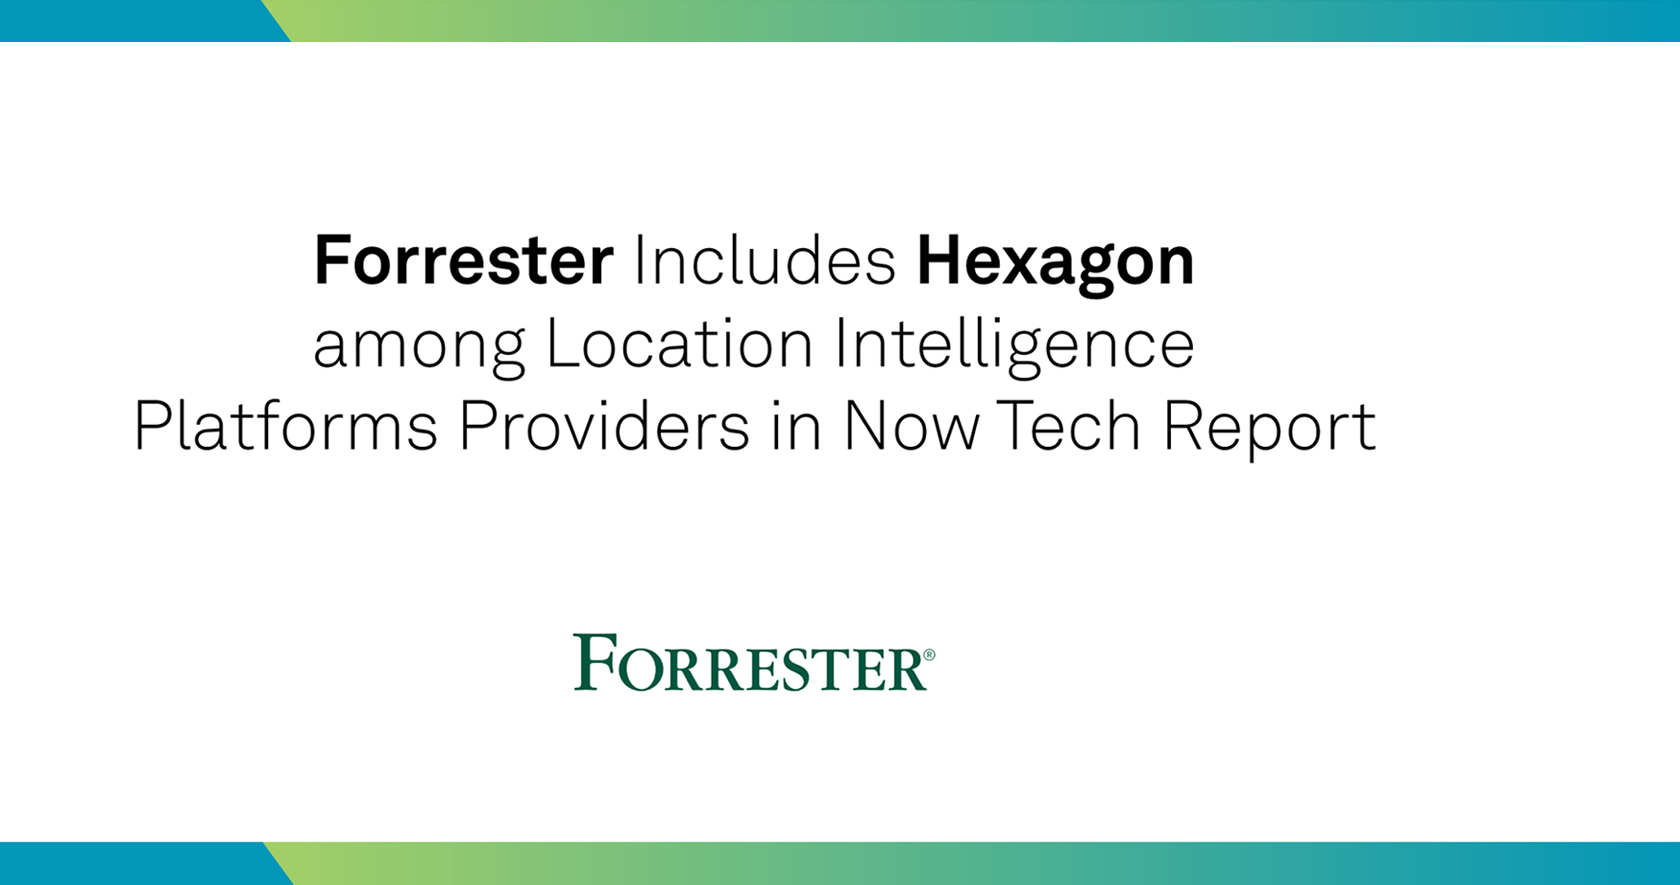 Forrester Now Tech